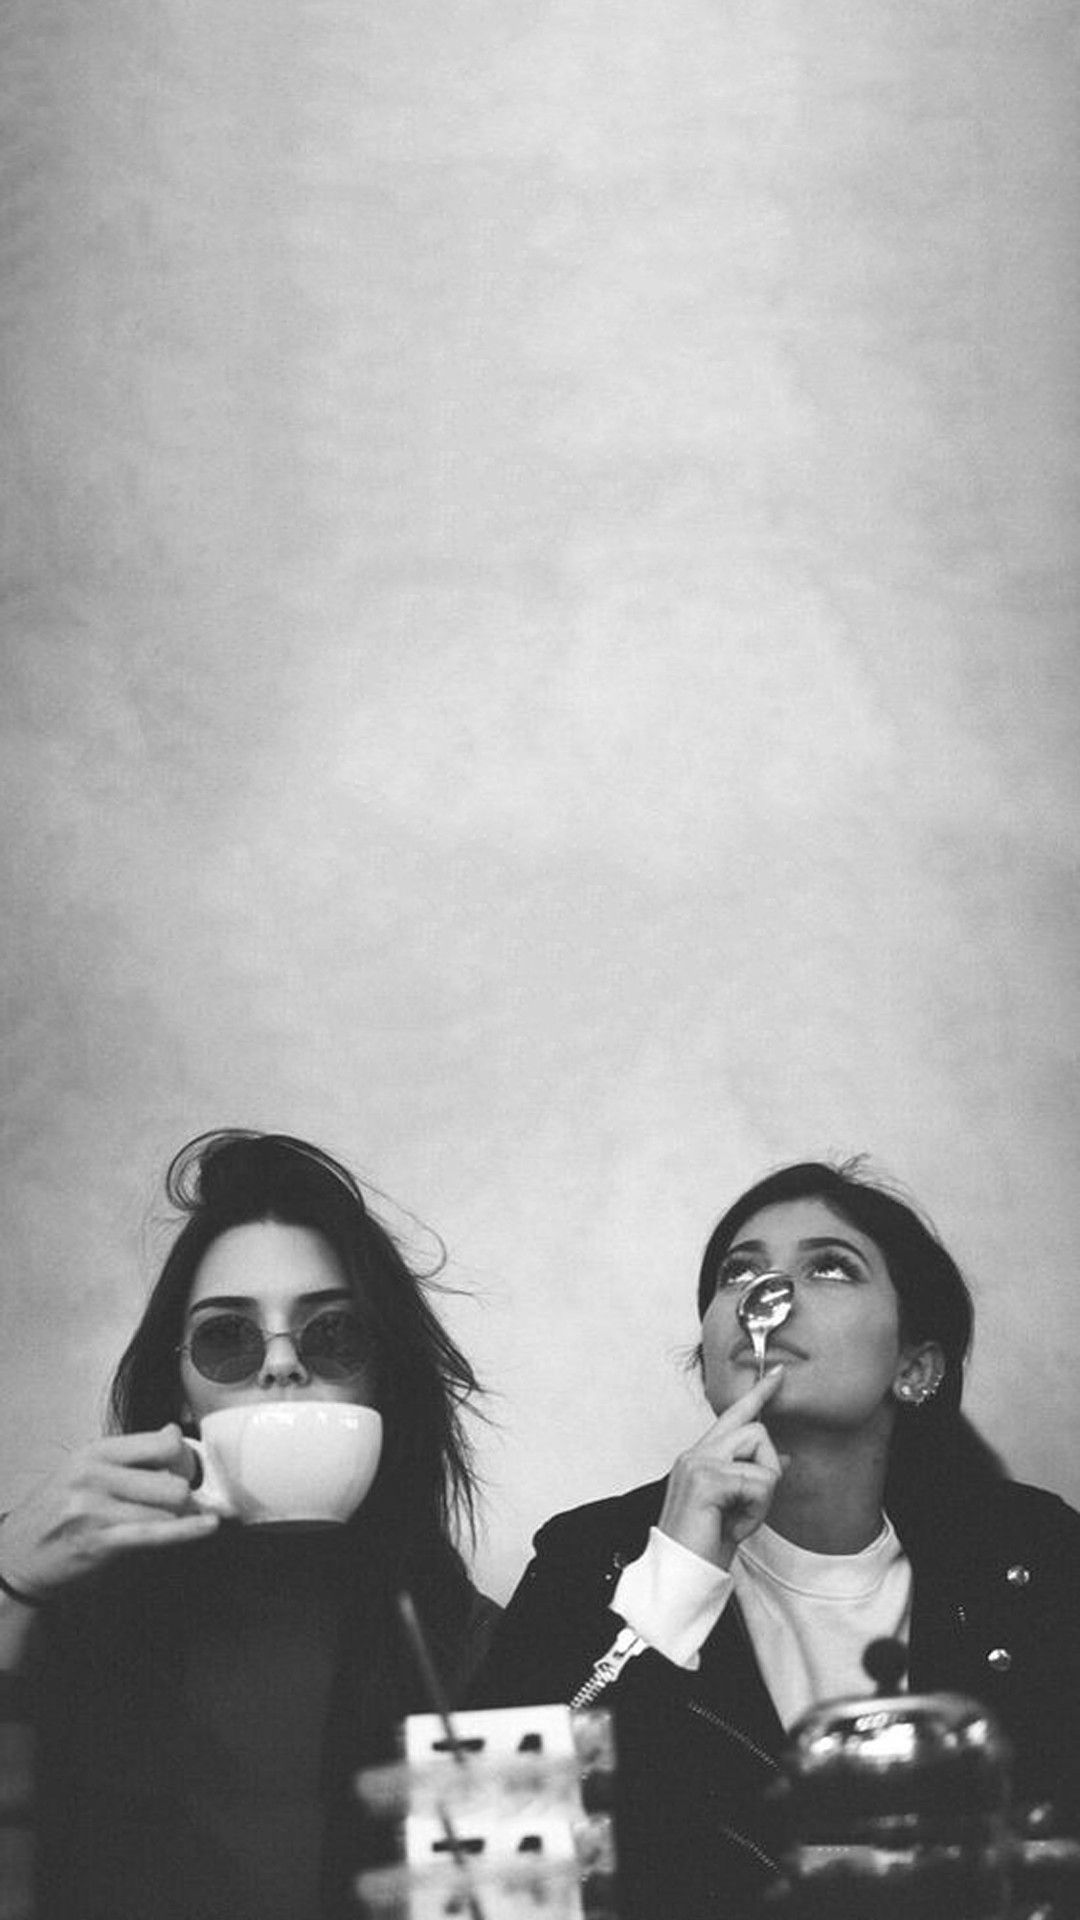 Morning Coffee Shades Kendall Jenner Wallpaper Friend Photoshoot Black And White Aesthetic